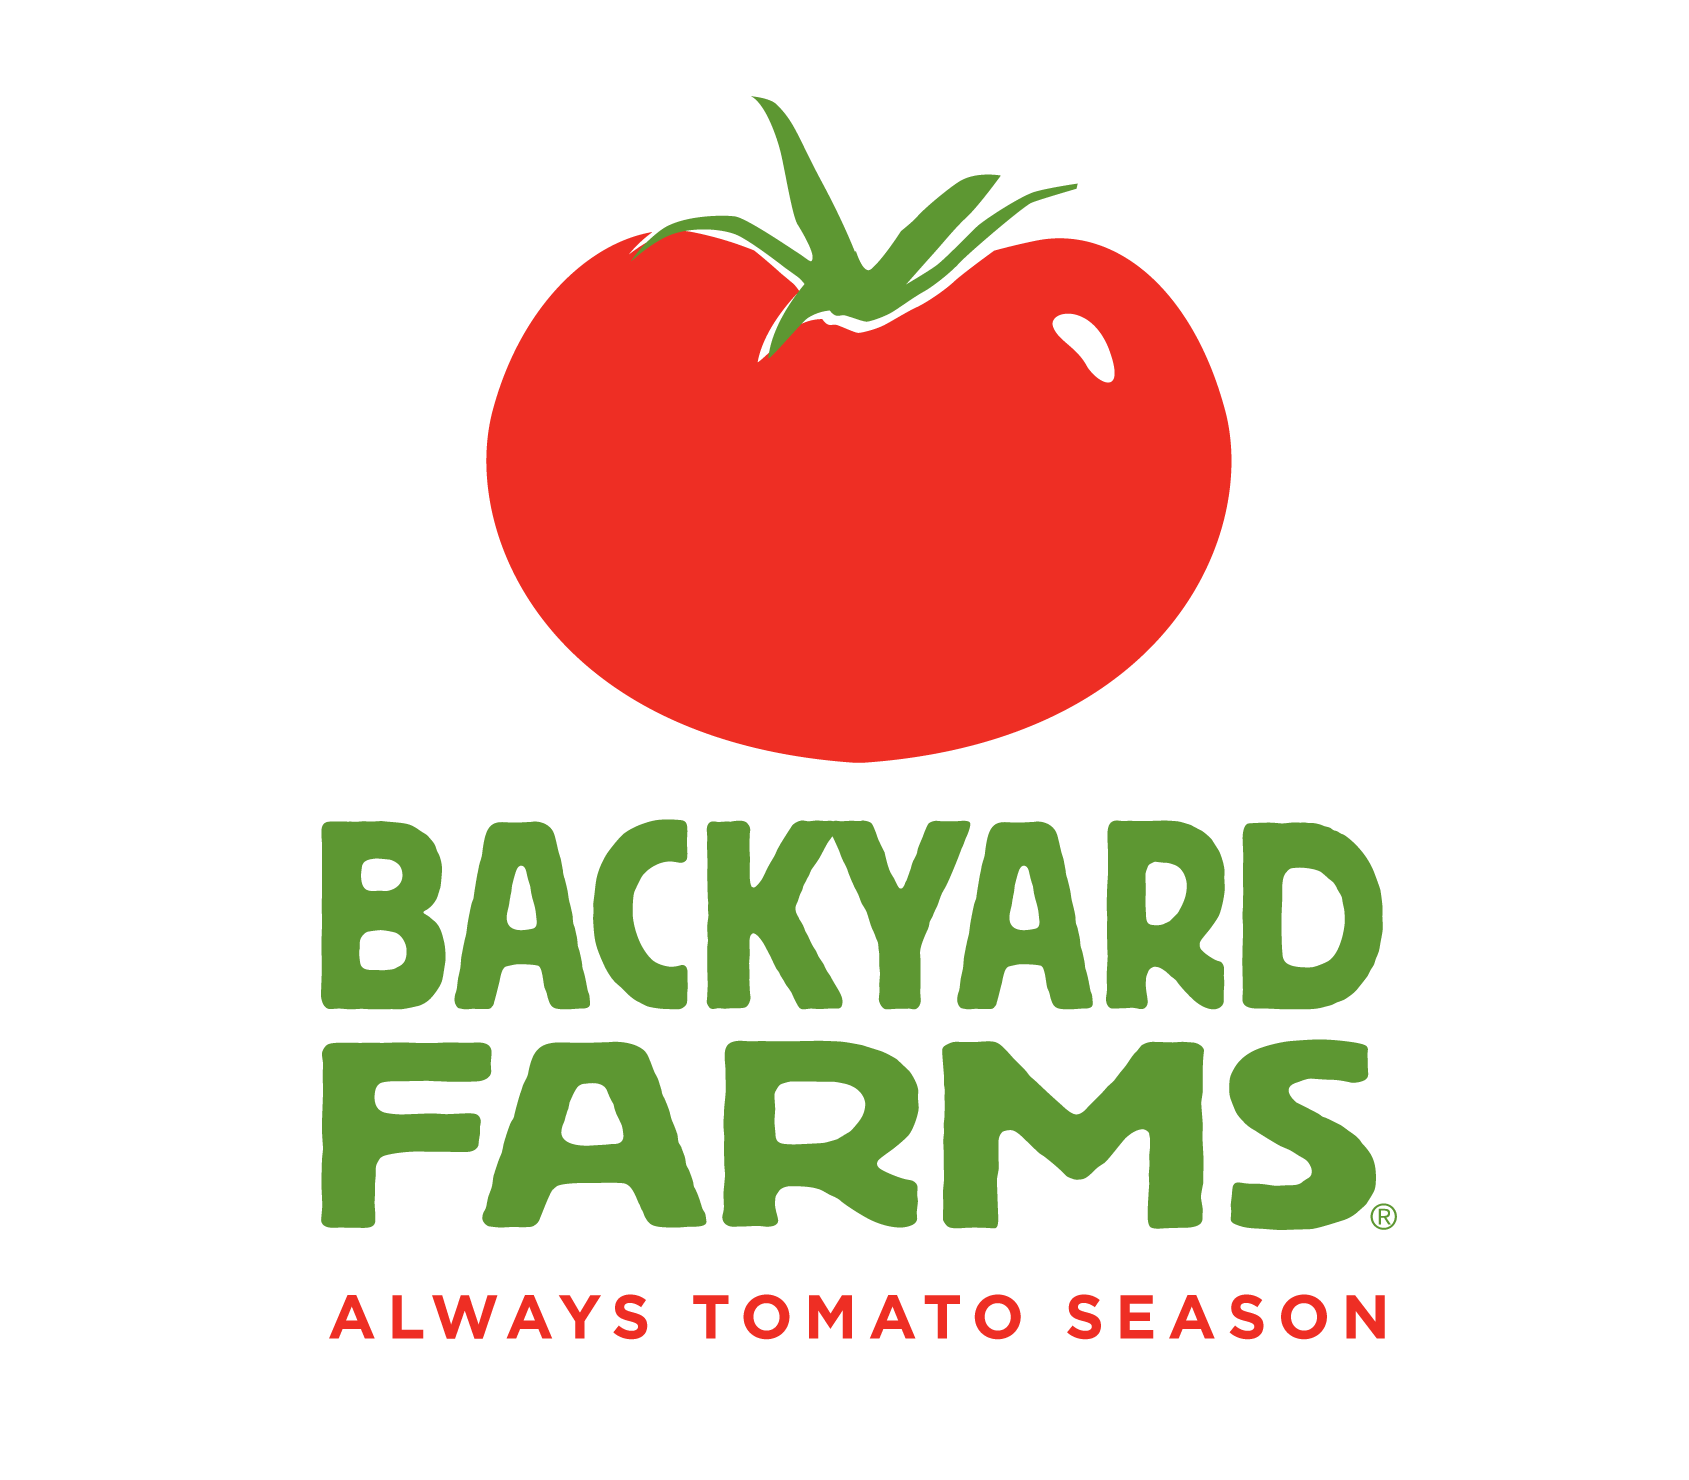 Backyard Farms logo